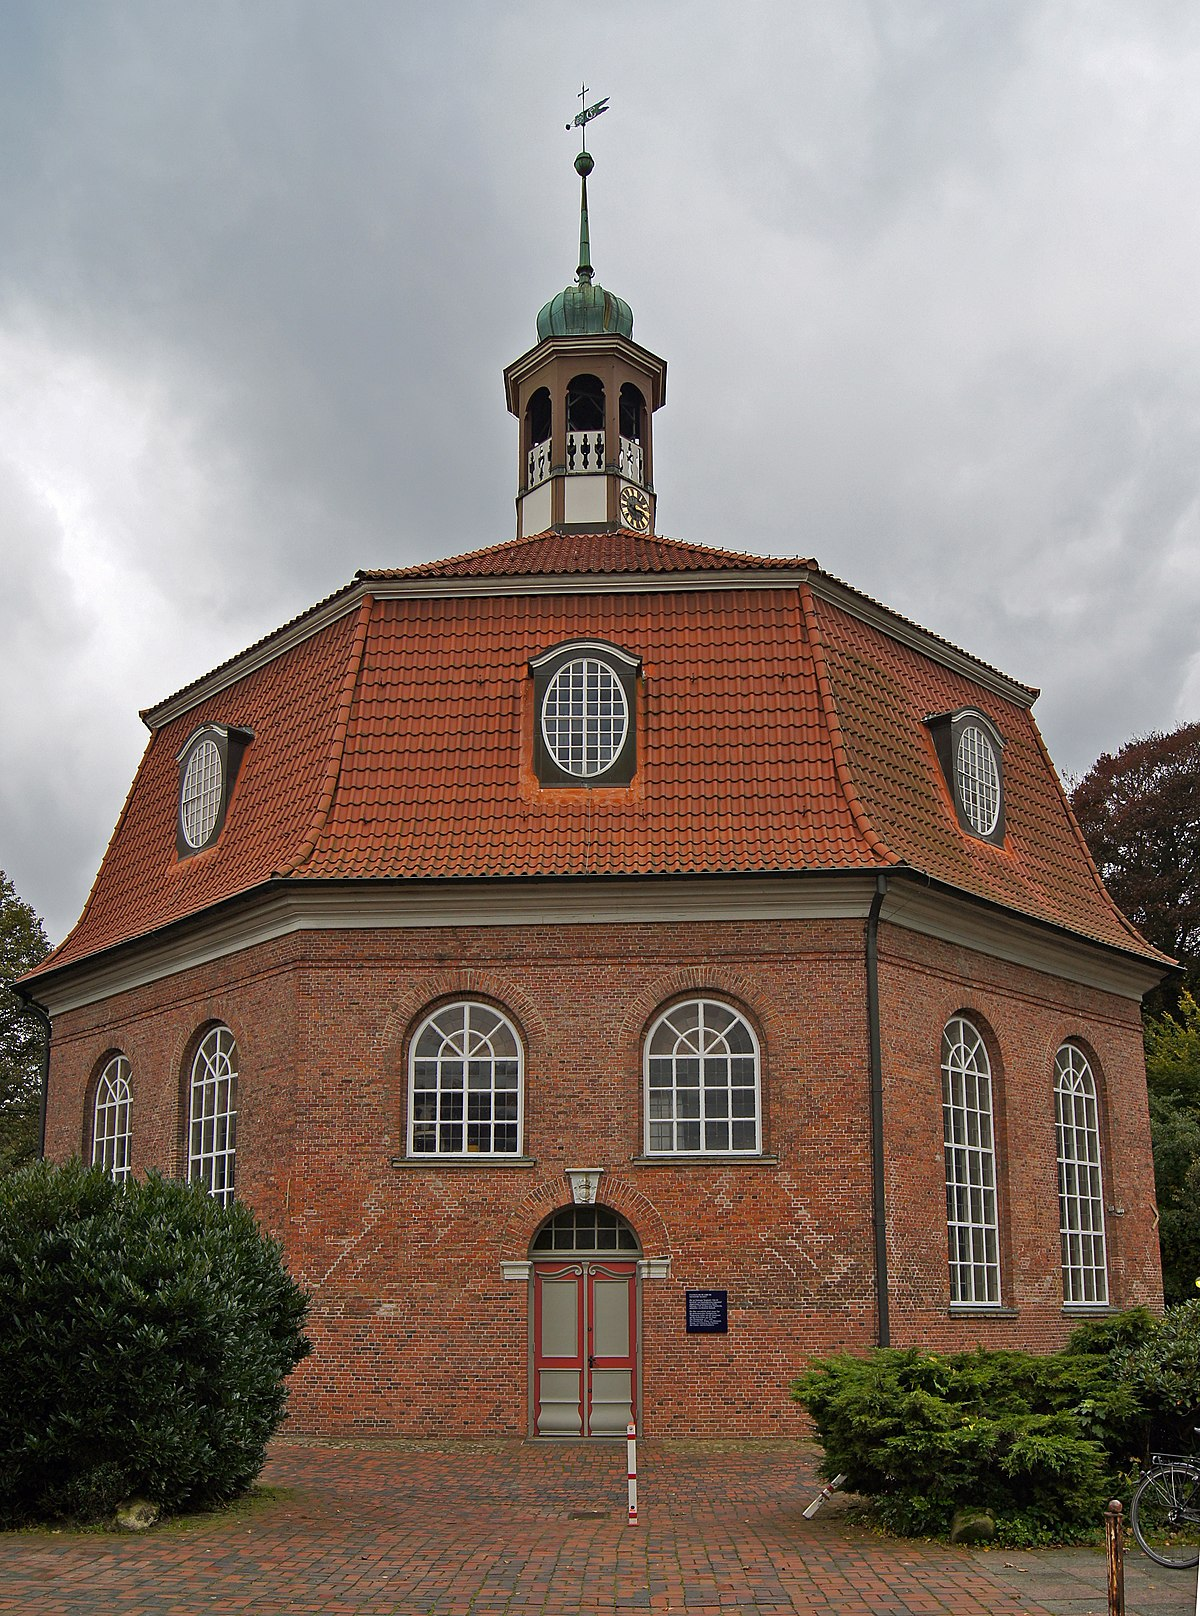 kirche am markt hamburg niendorf wikipedia. Black Bedroom Furniture Sets. Home Design Ideas